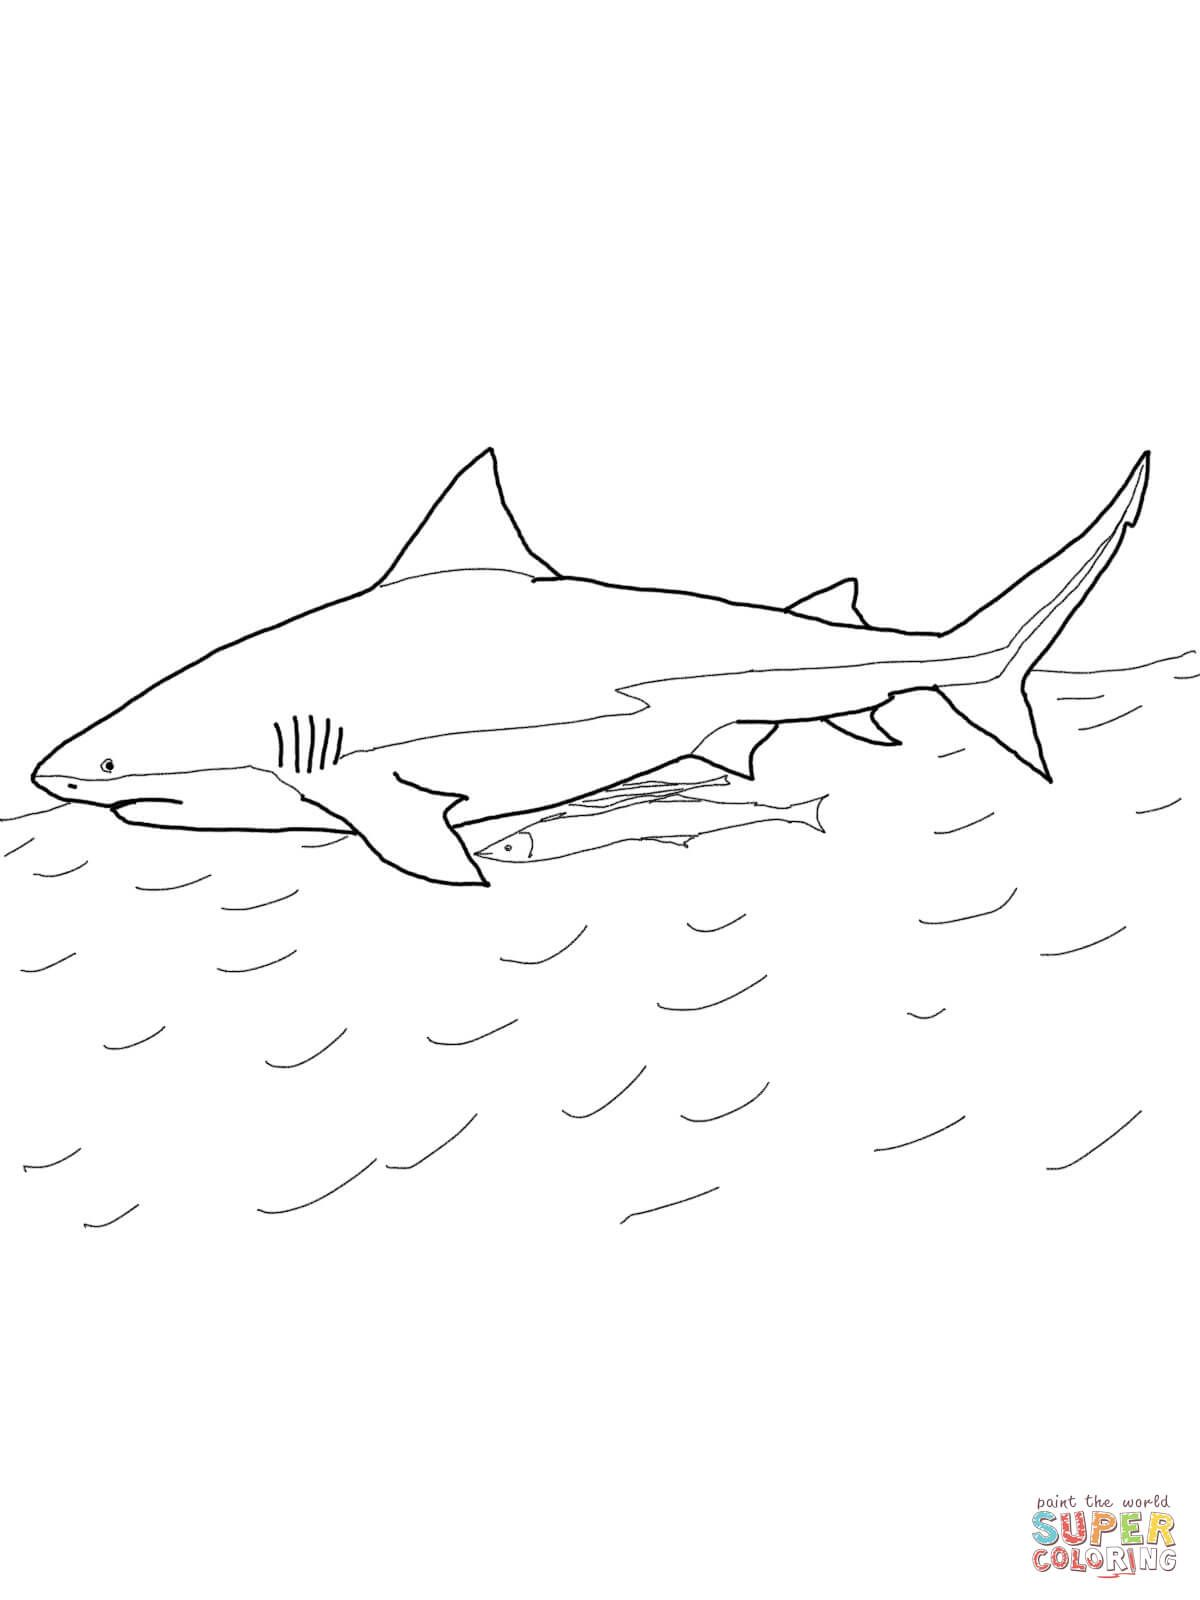 Sharks Coloring Pages Free Coloring Pages Shark Coloring Pages